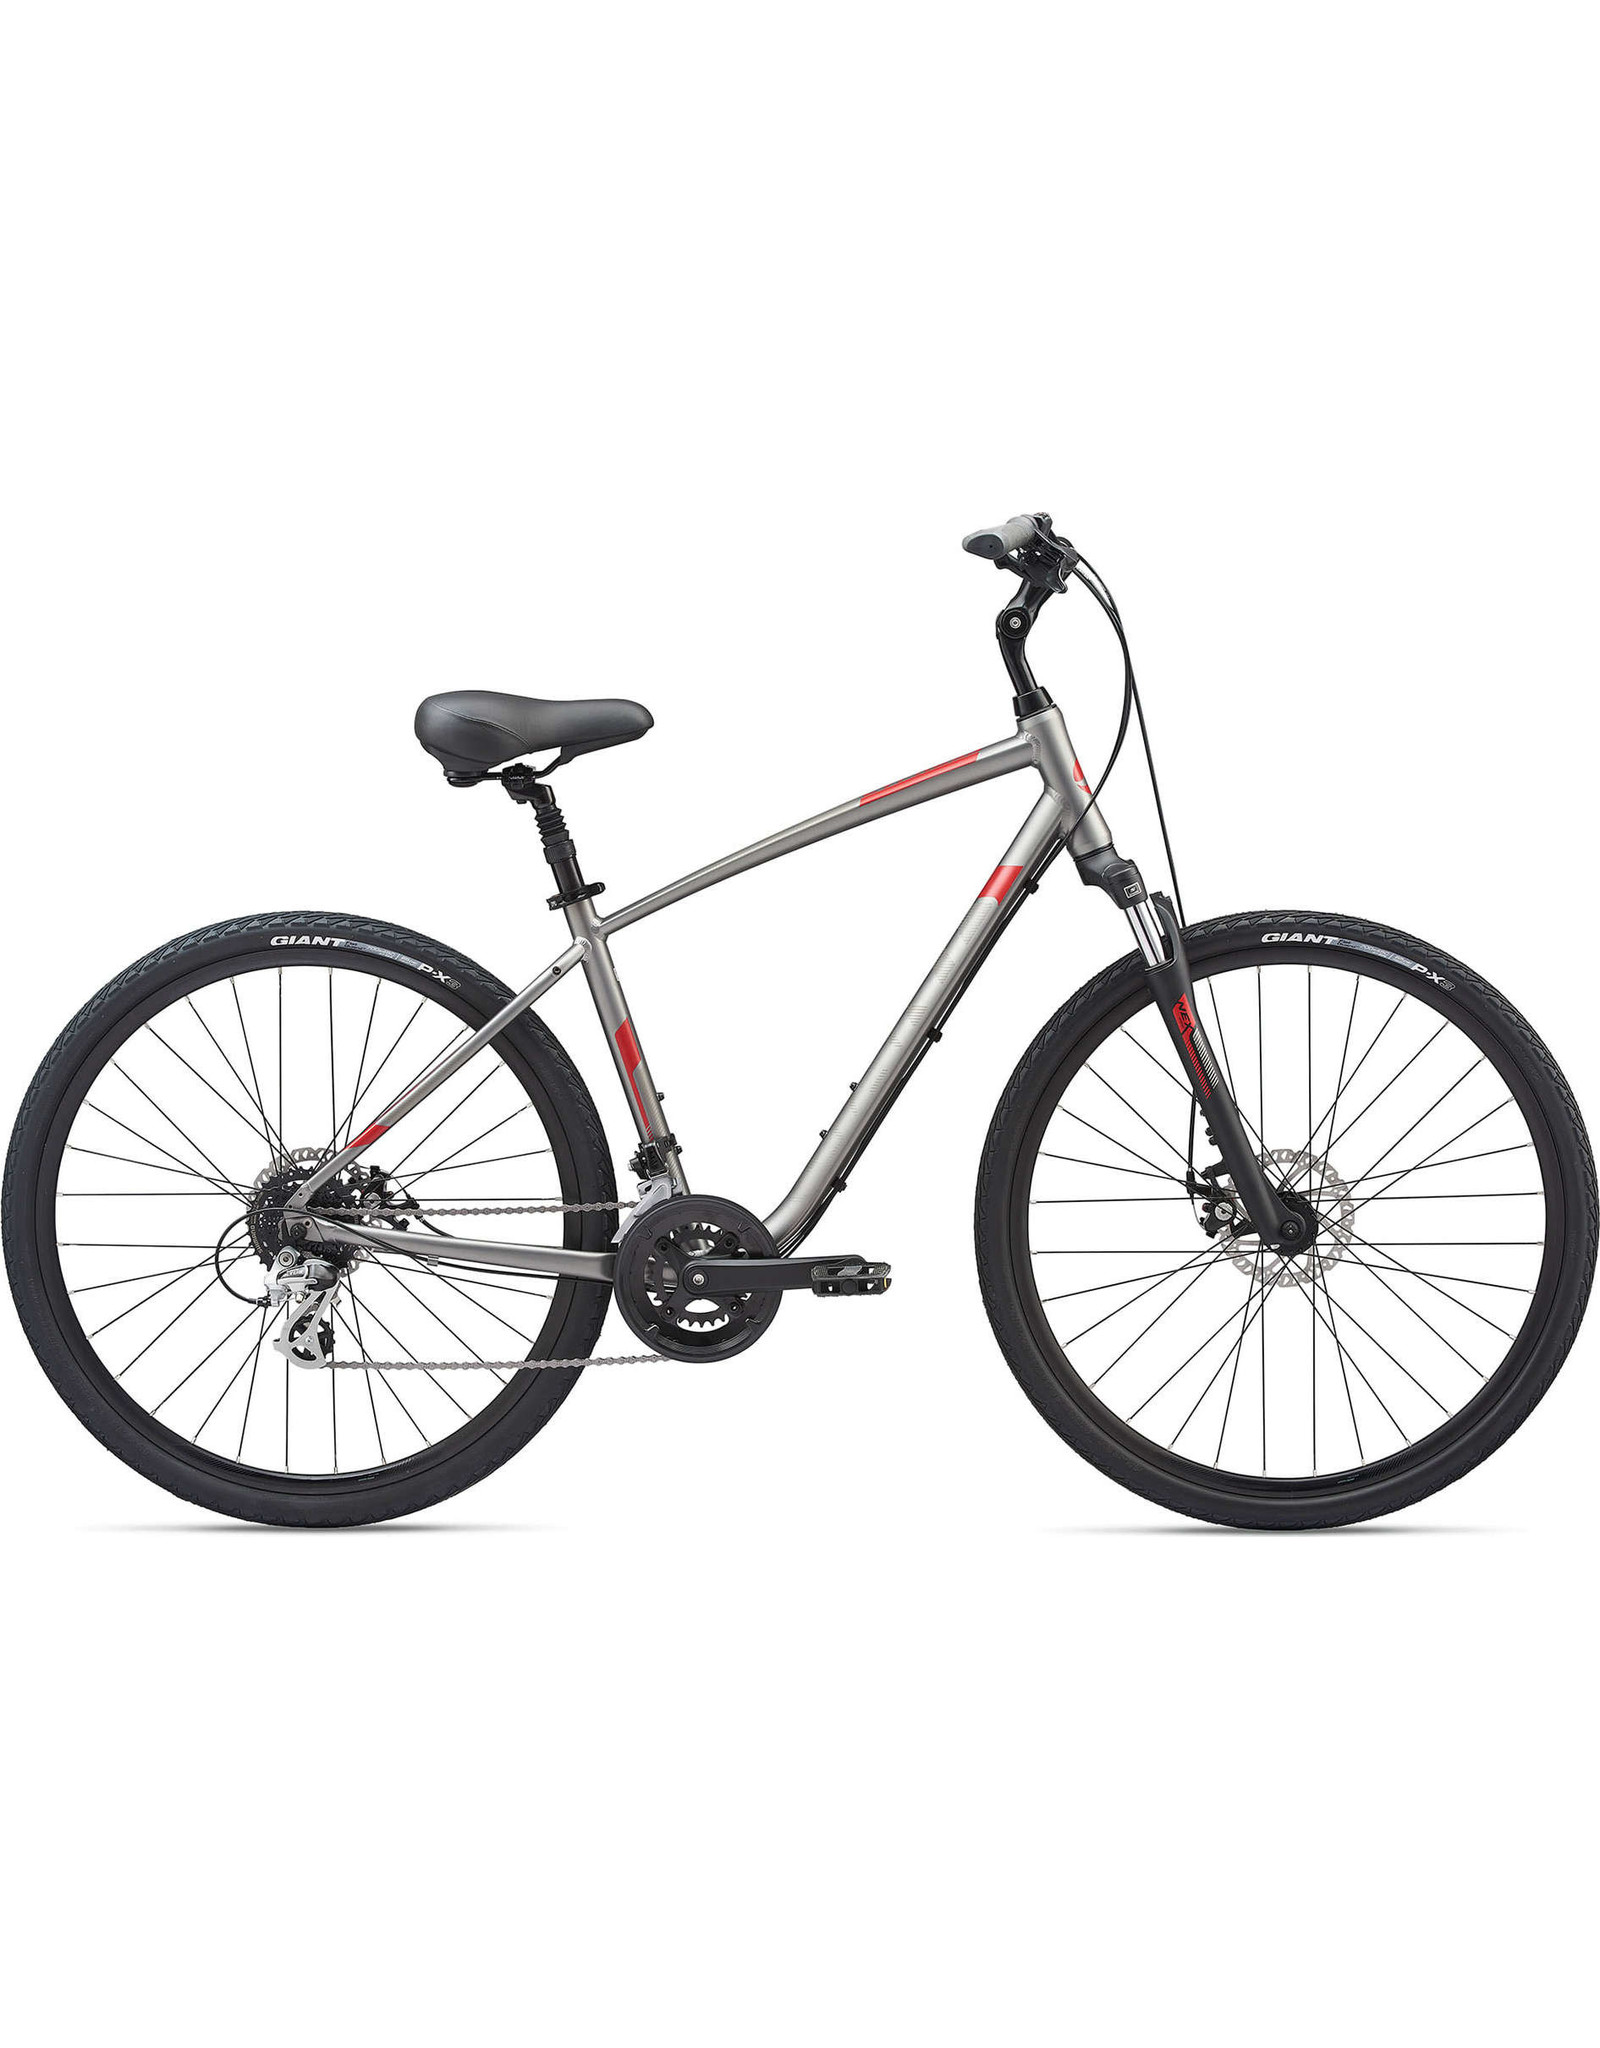 Giant 2021 Giant Cypress DX